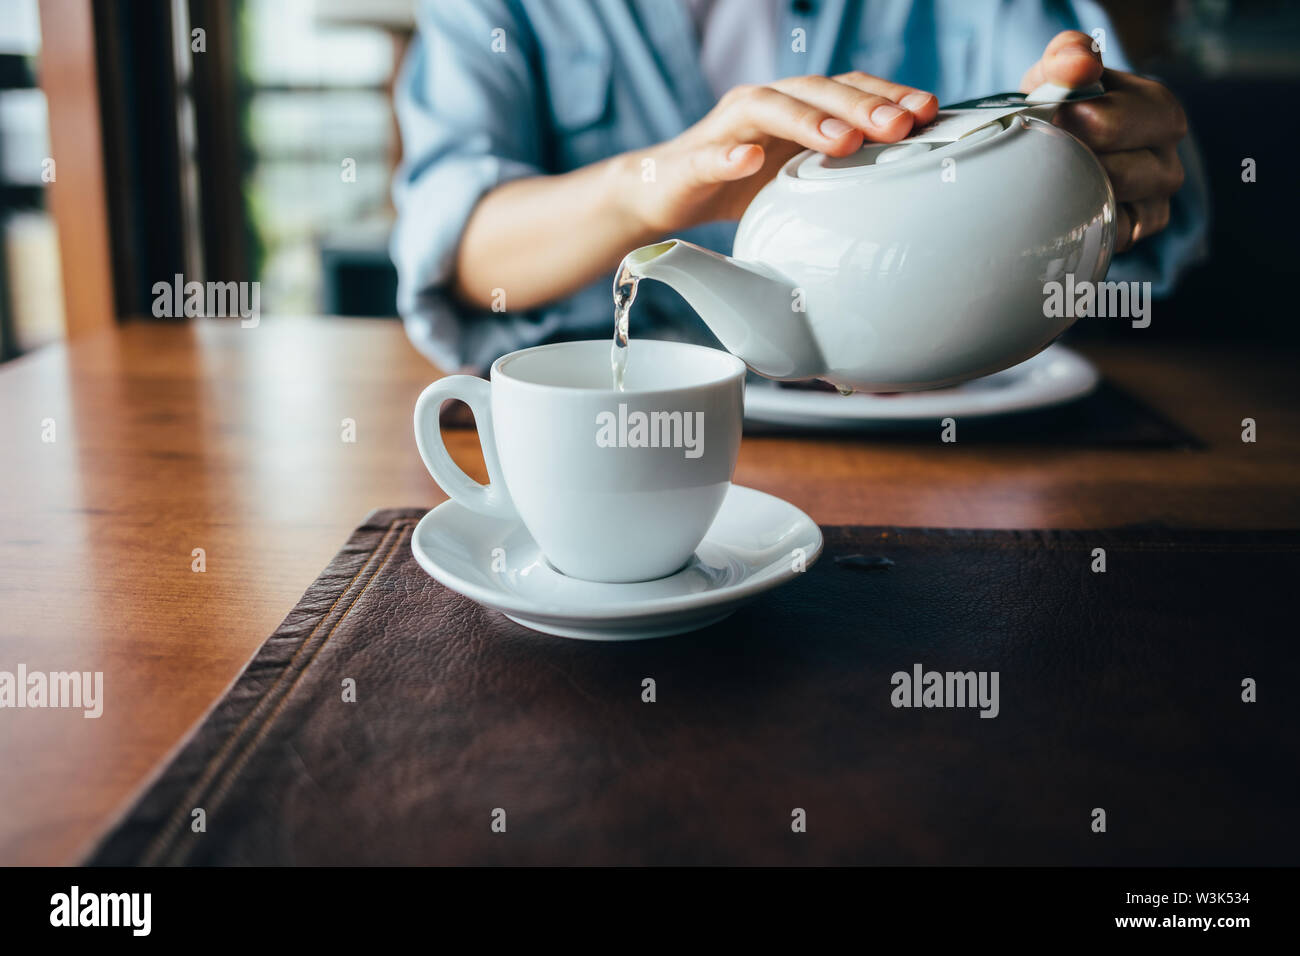 Female's hands pour tea from teapot into cup, close-up. Young woman prepares hot drink sitting at table in restaurant at daytime. - Stock Image